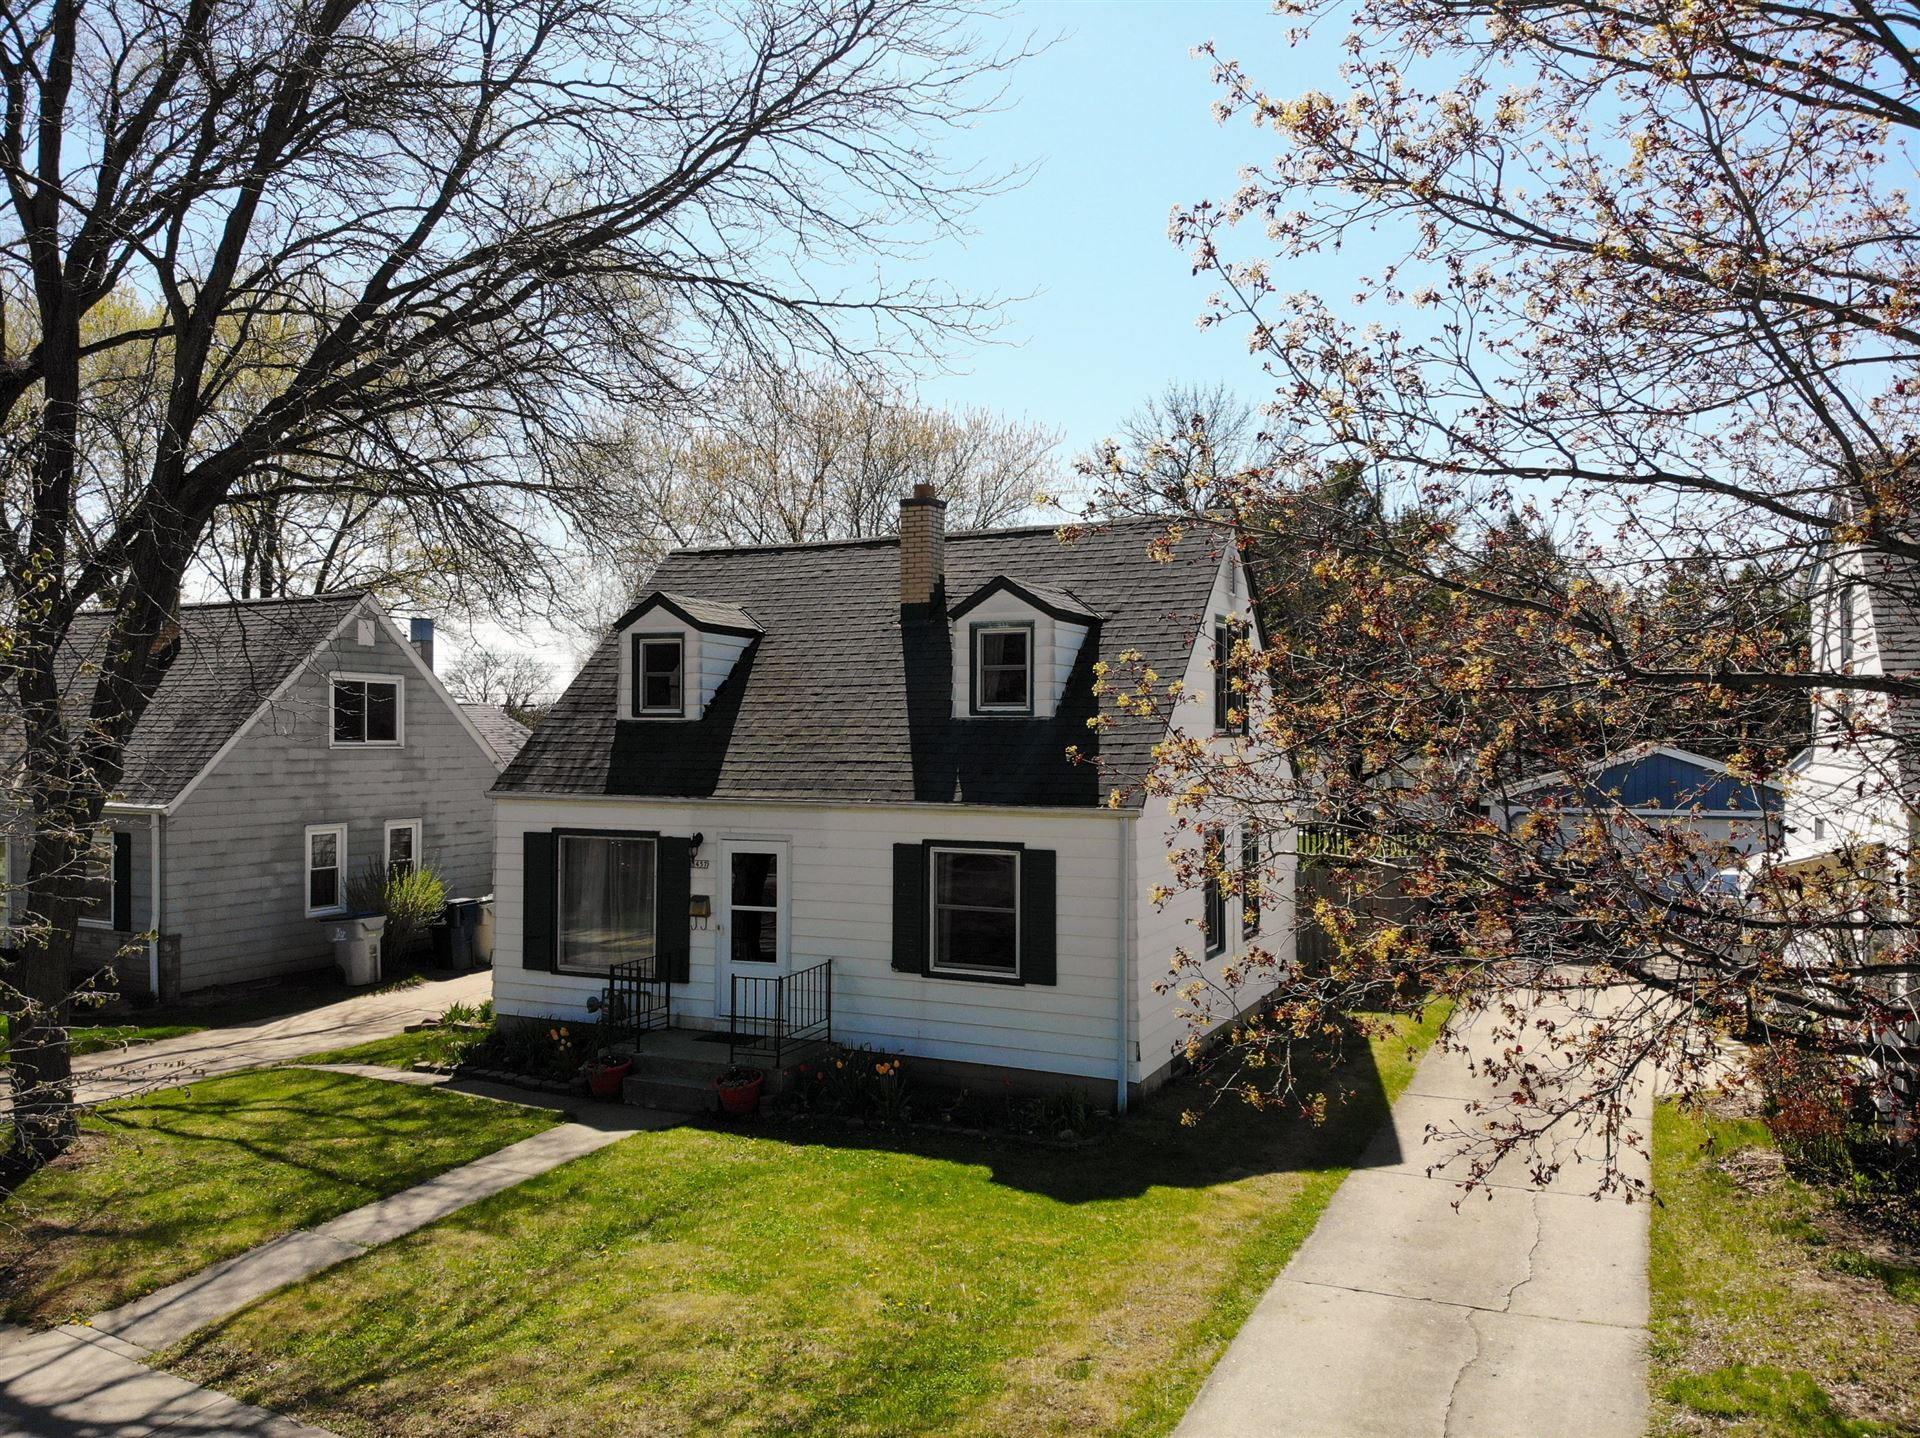 3457 N 97th St, Milwaukee, WI 53222 - #: 1691670